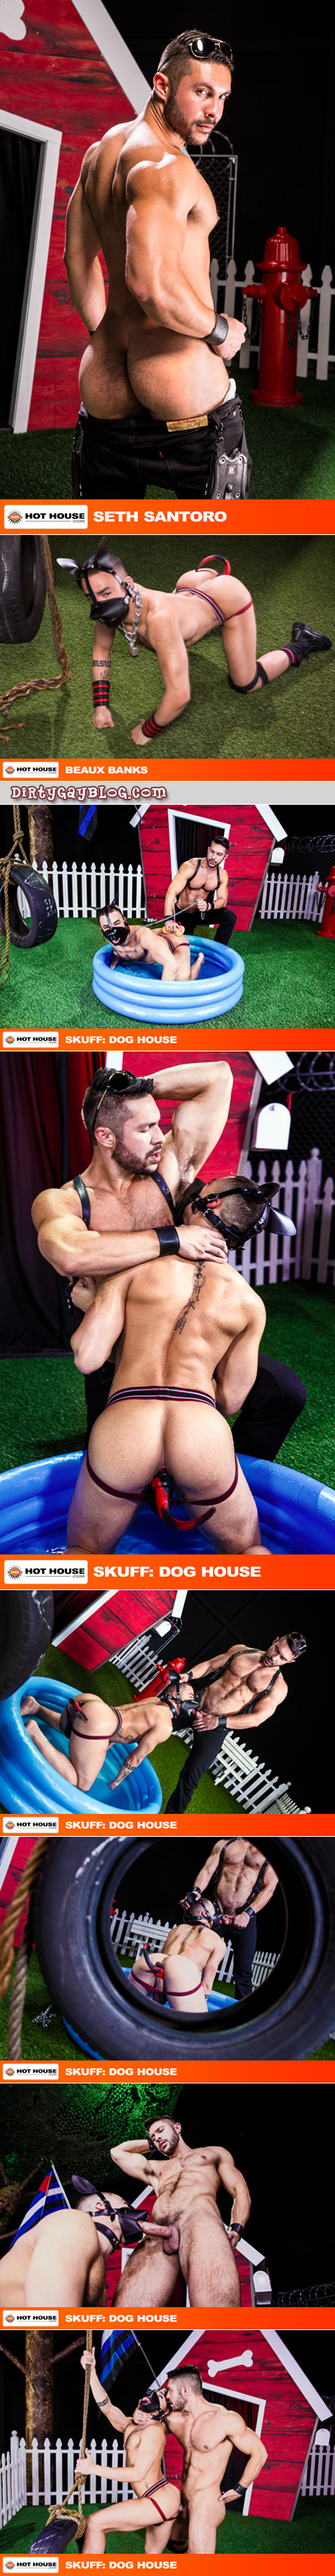 Leather puppy play leads to gay sex among hairy muscle men.